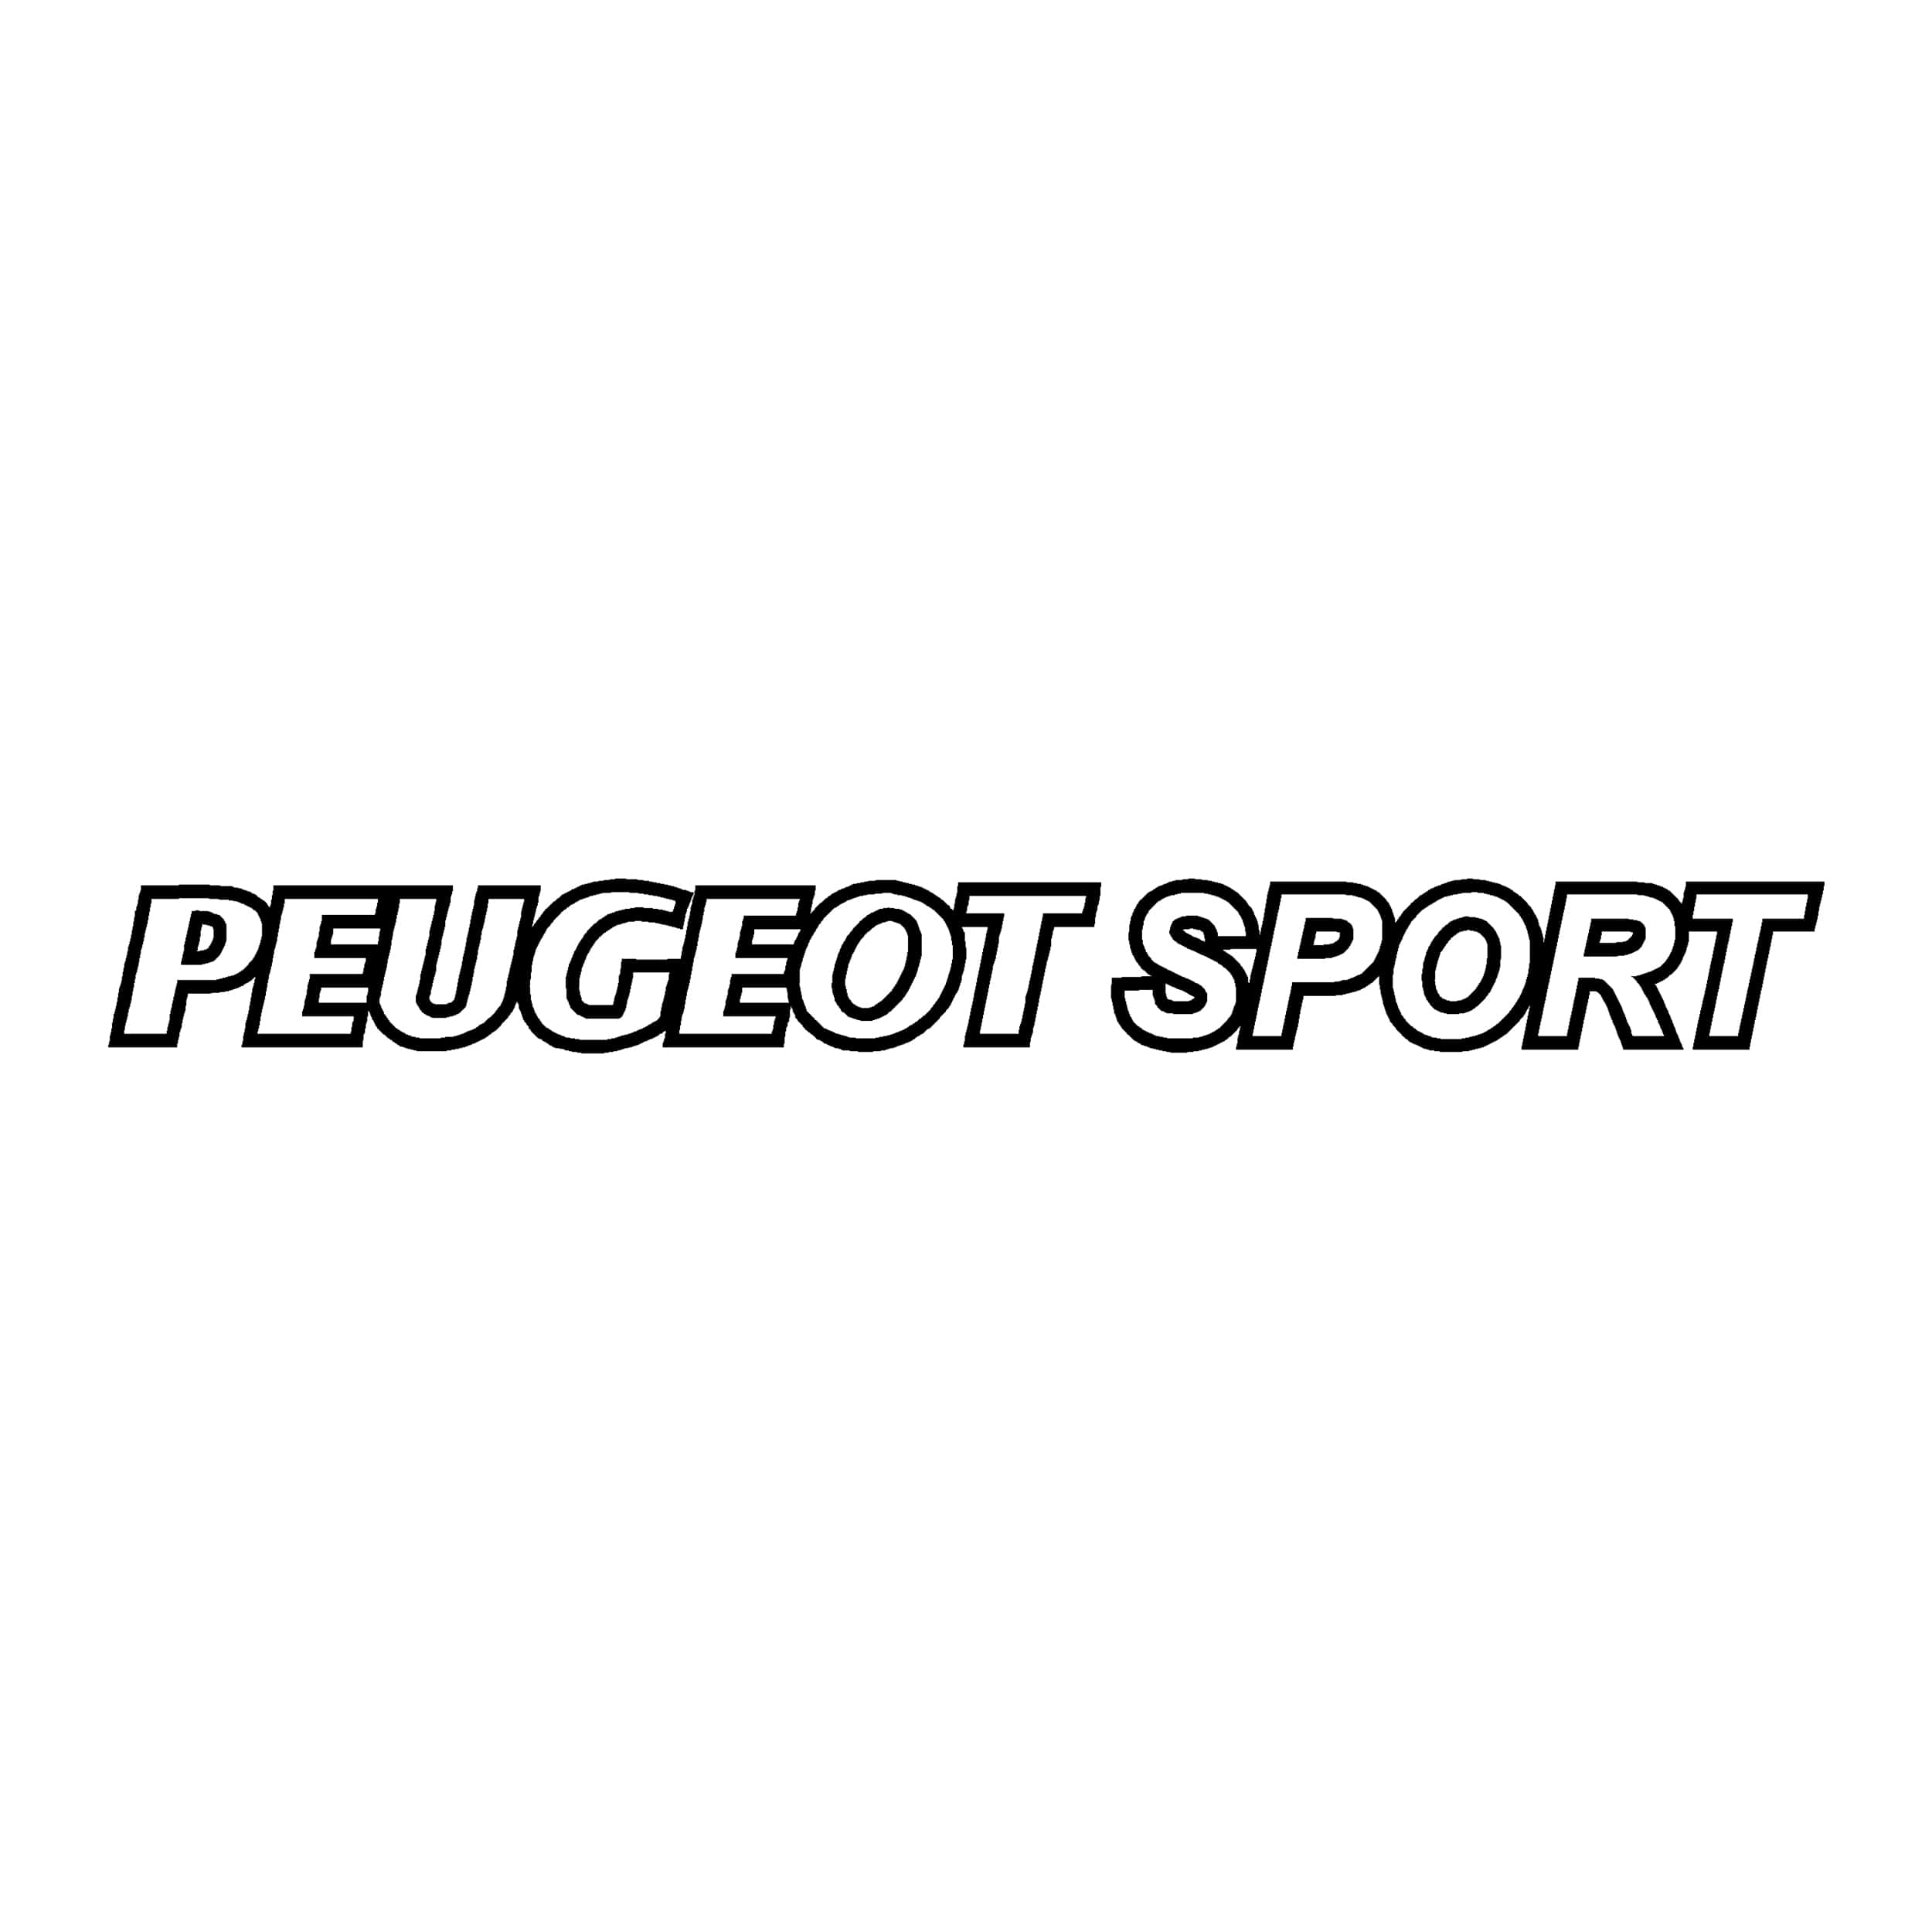 stickers-peugeot-sport-ref-6-autocolant-adhesif-racing-auto-tuning-ralllye-competition-sticker-deco-adhesive-voiture-min